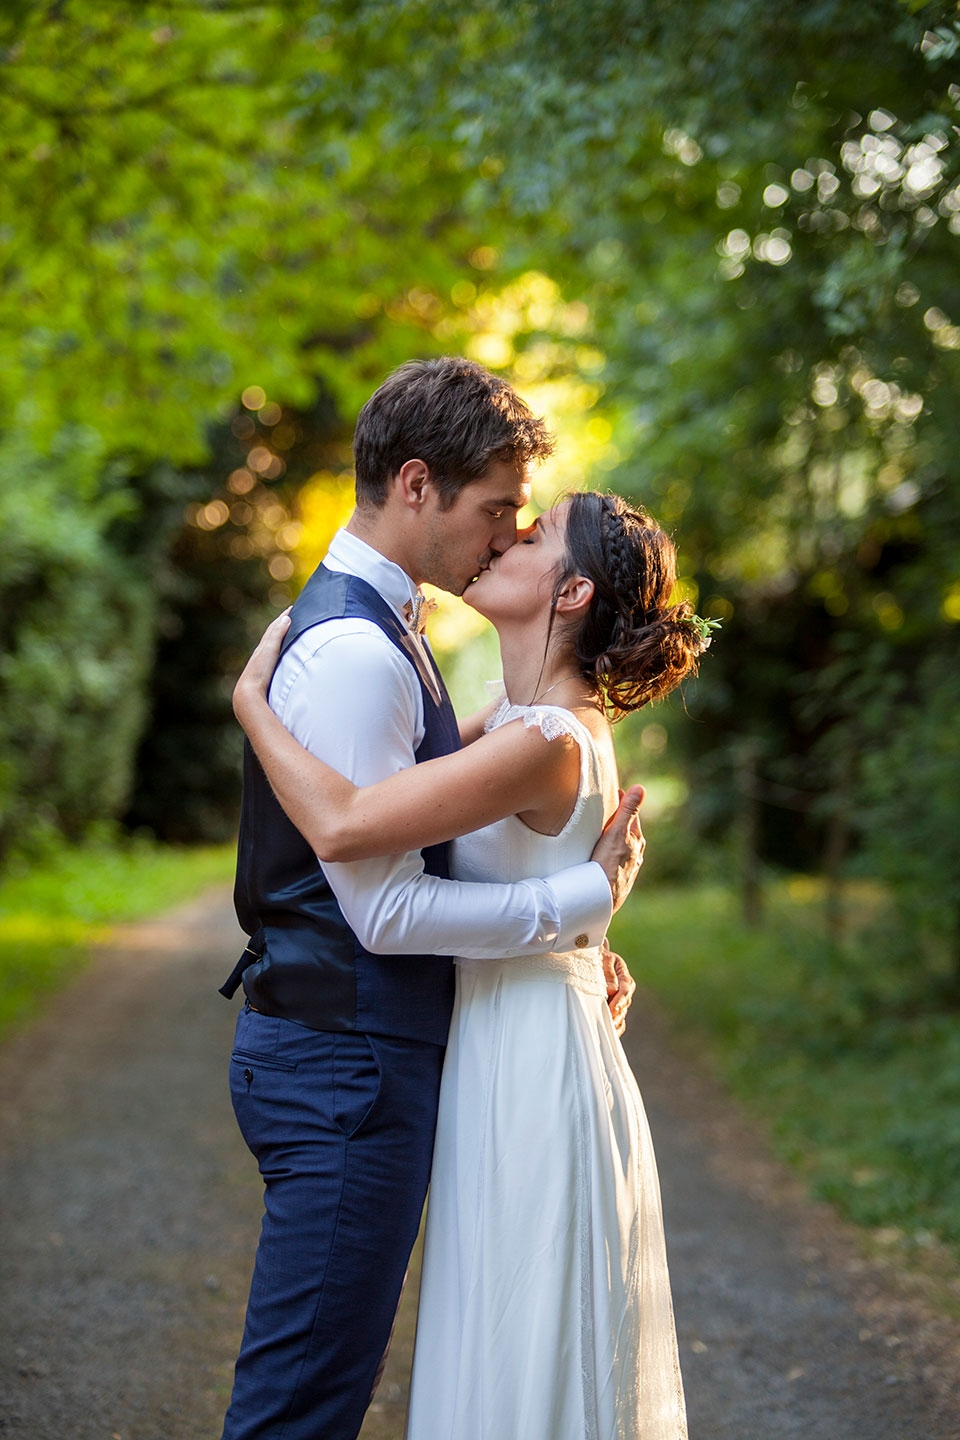 particuliers-evenements-mariage-oui-elise&quentin-74